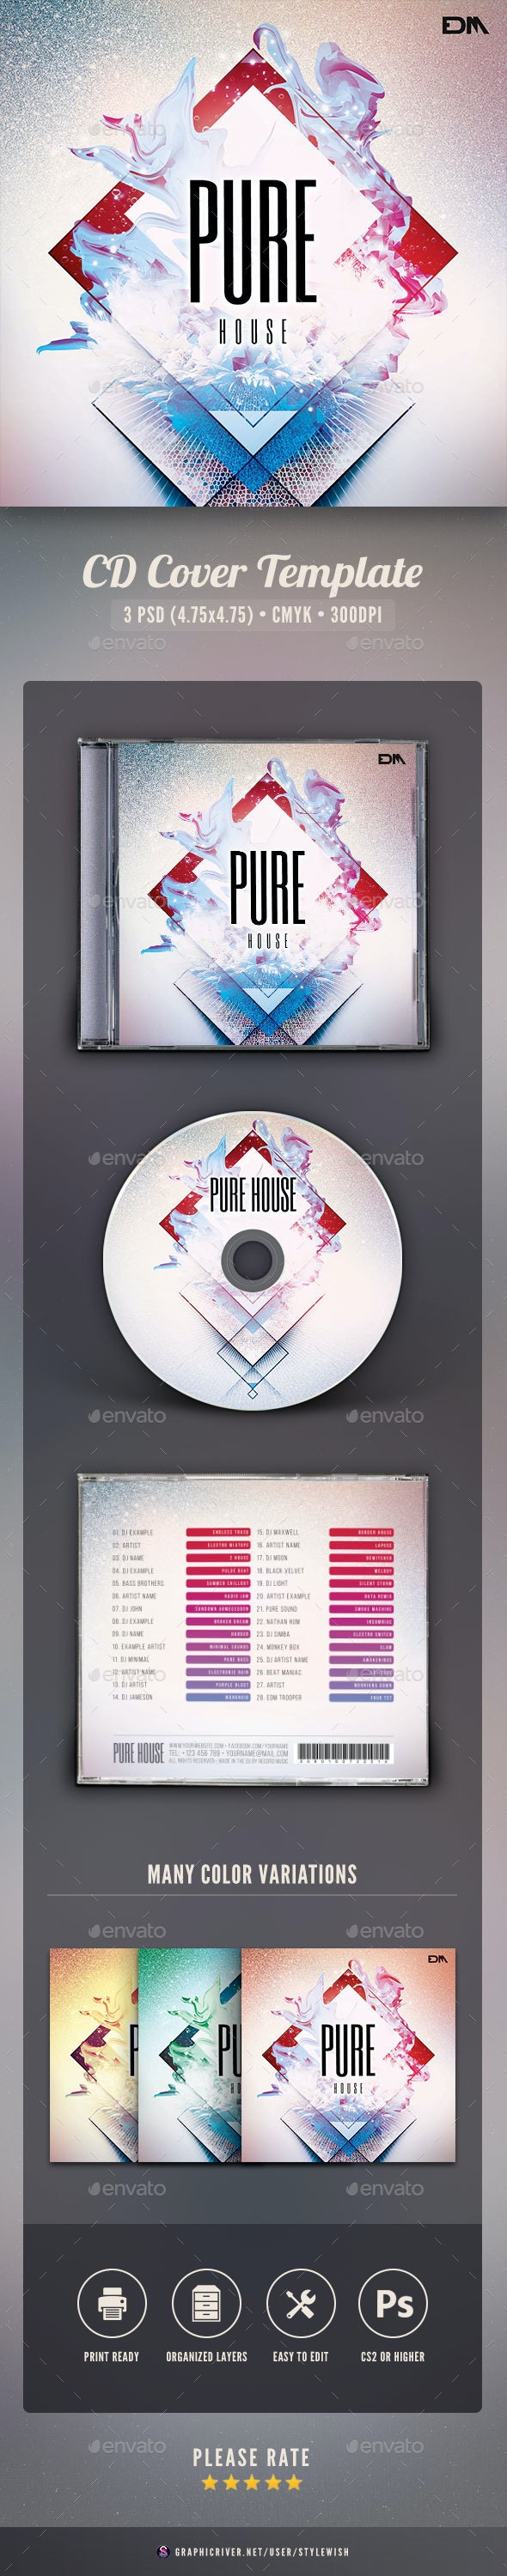 Pure House CD Cover Artwork - CD & DVD Artwork Print Templates